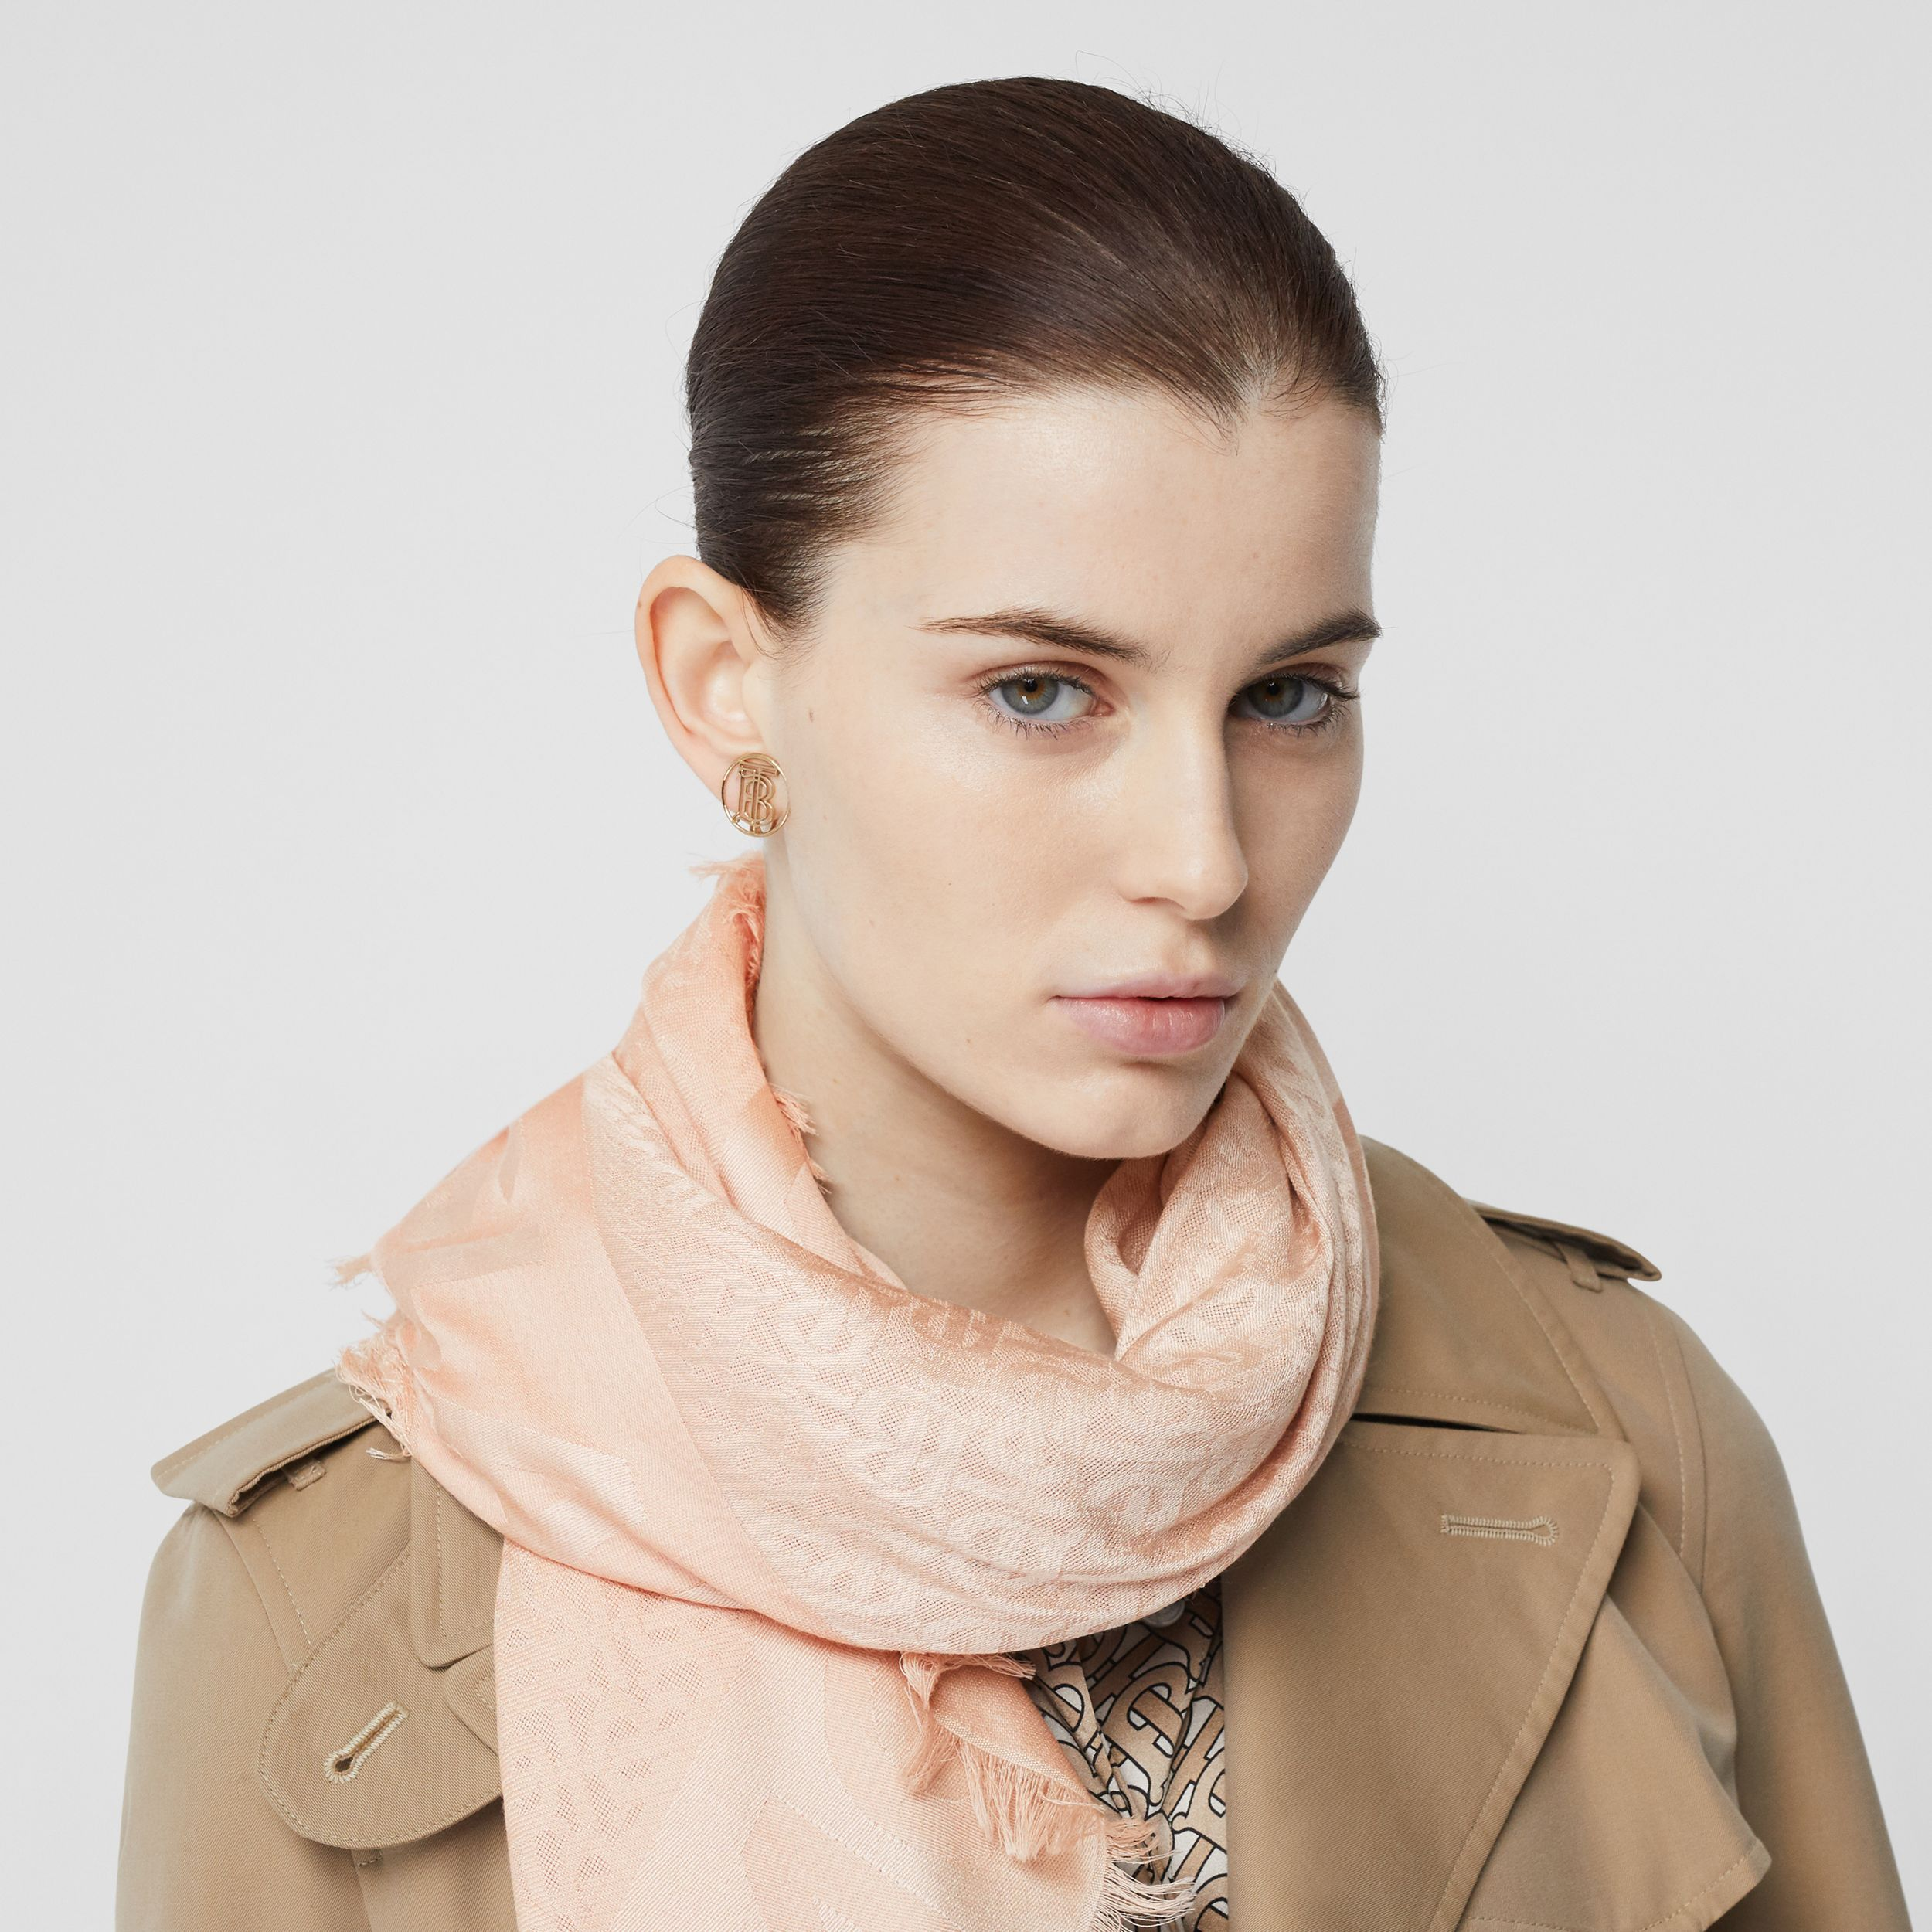 Monogram Silk Wool Jacquard Large Square Scarf in Rose Beige | Burberry - 3